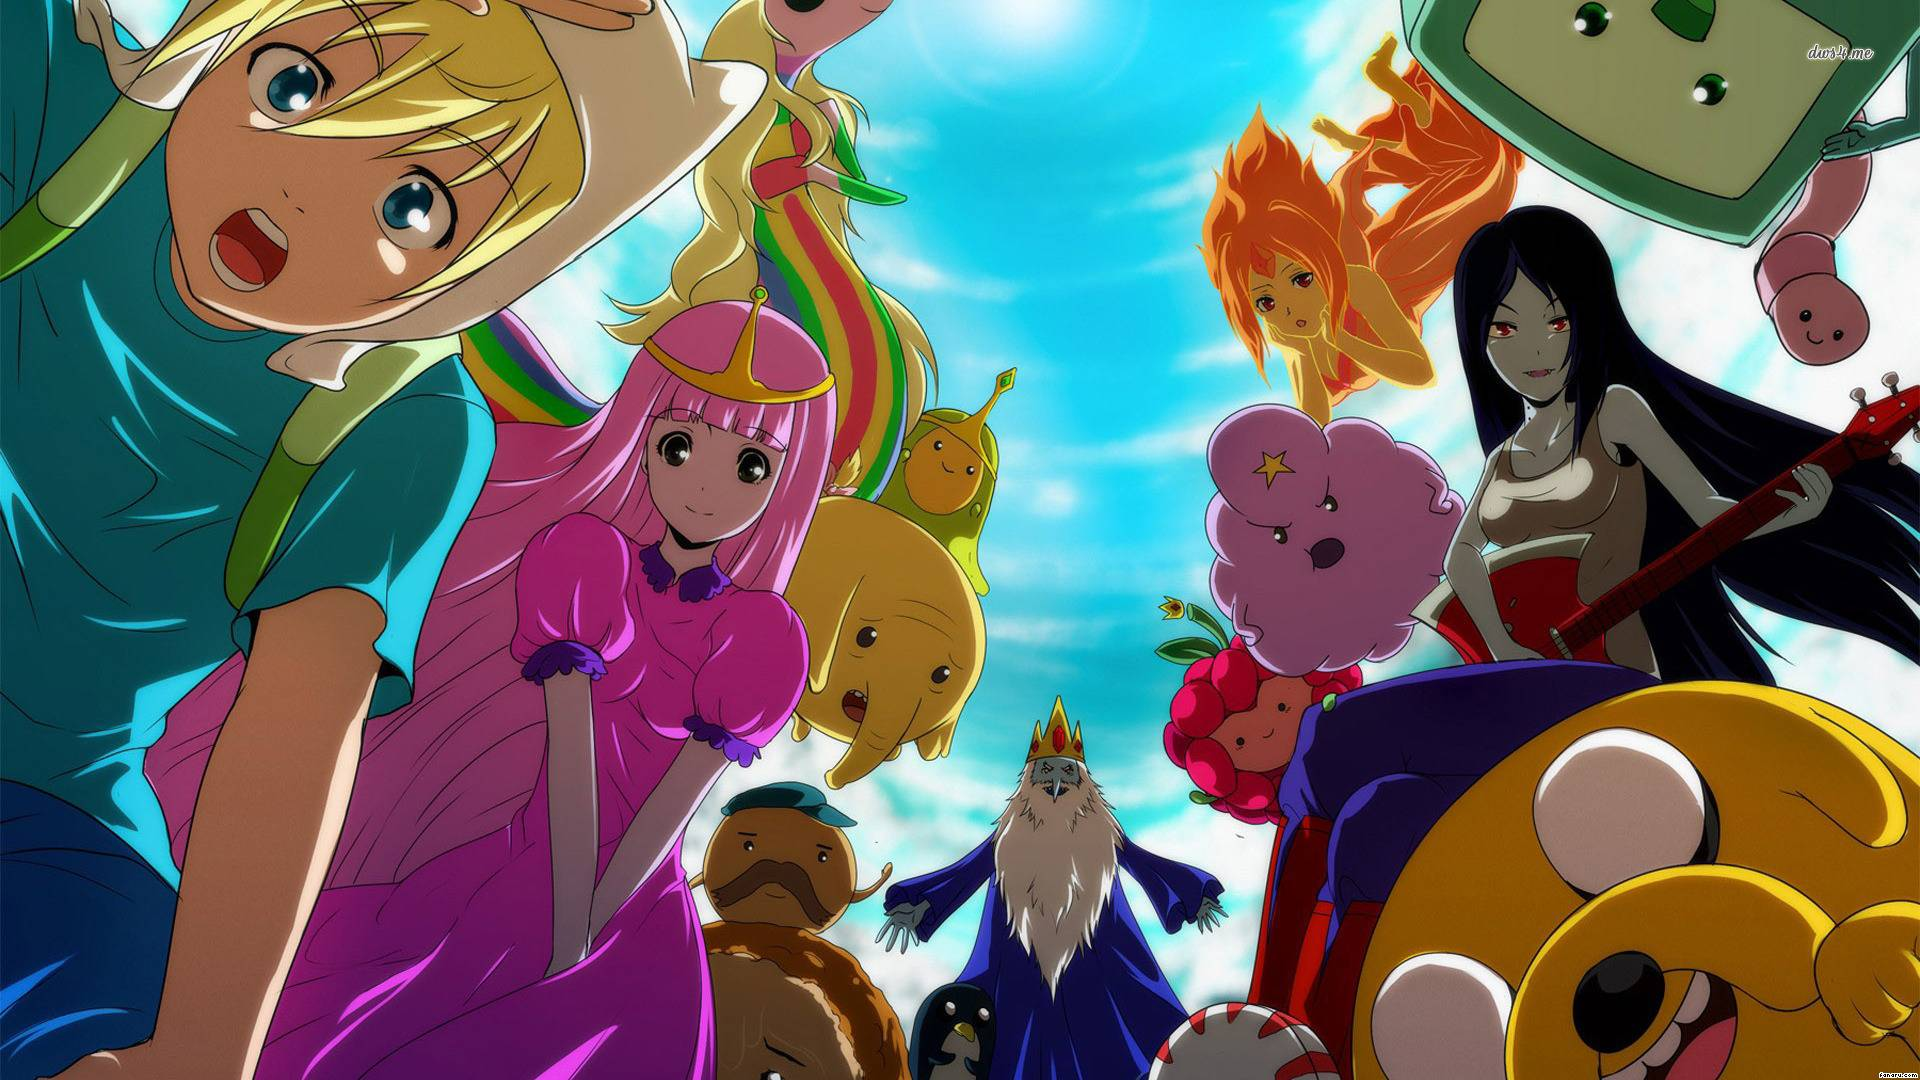 Anime-Adventure-Time-Adventure-Time-1920x1080-wallpaper-wpc5802139